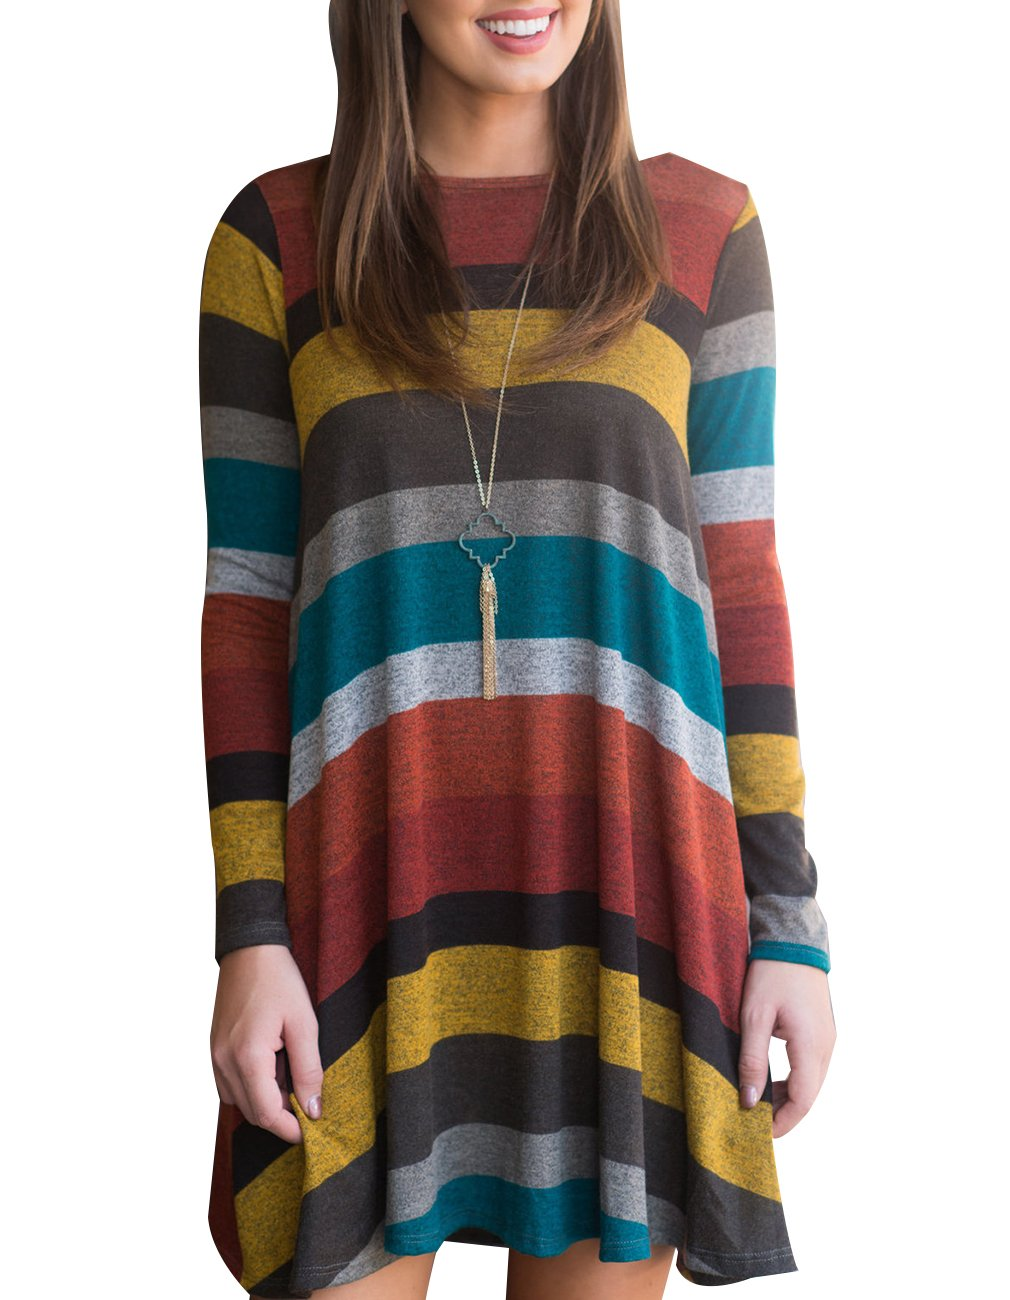 a27b7c26ac8 The soft material and the colors are awesome and look great together having  a pocket which blends in nicely. Loose Multicolor Striped Womens Tunic Tops.